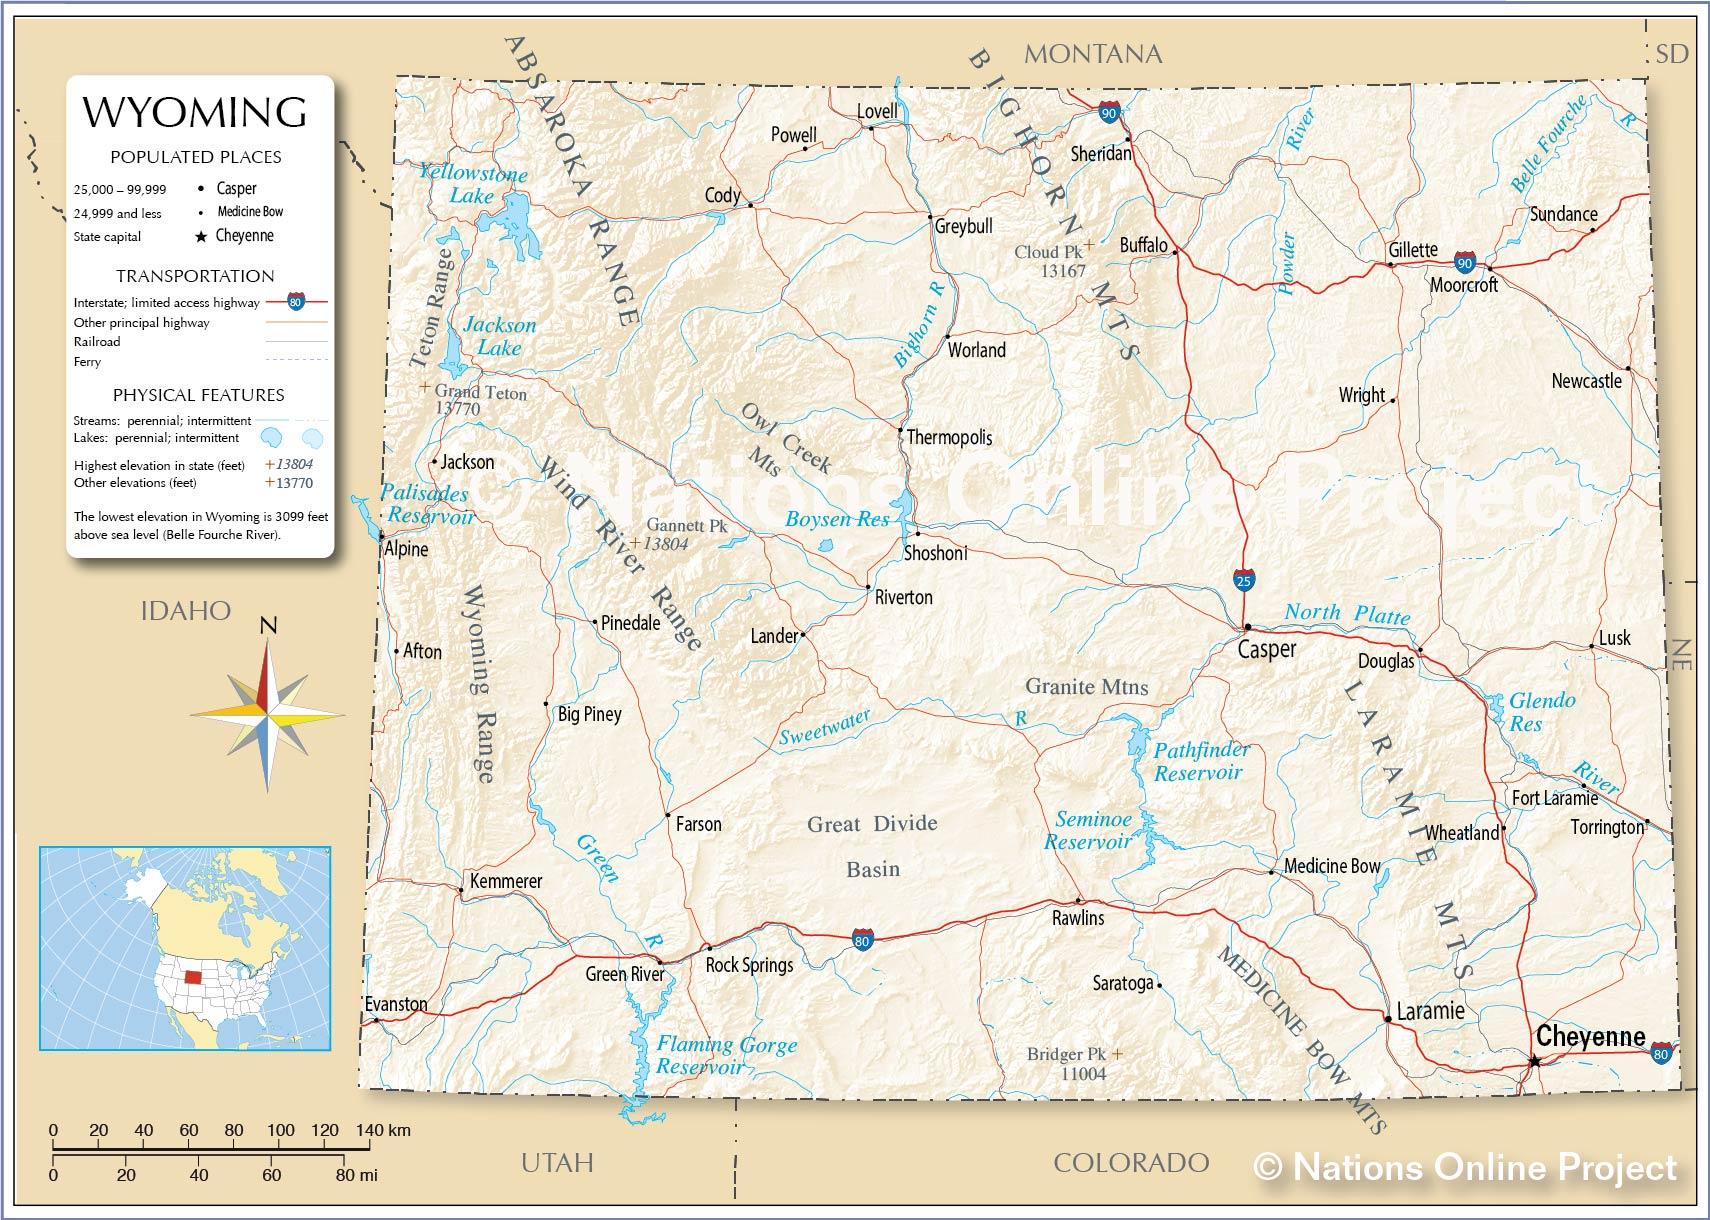 Reference Map of Wyoming USA Nations line Project